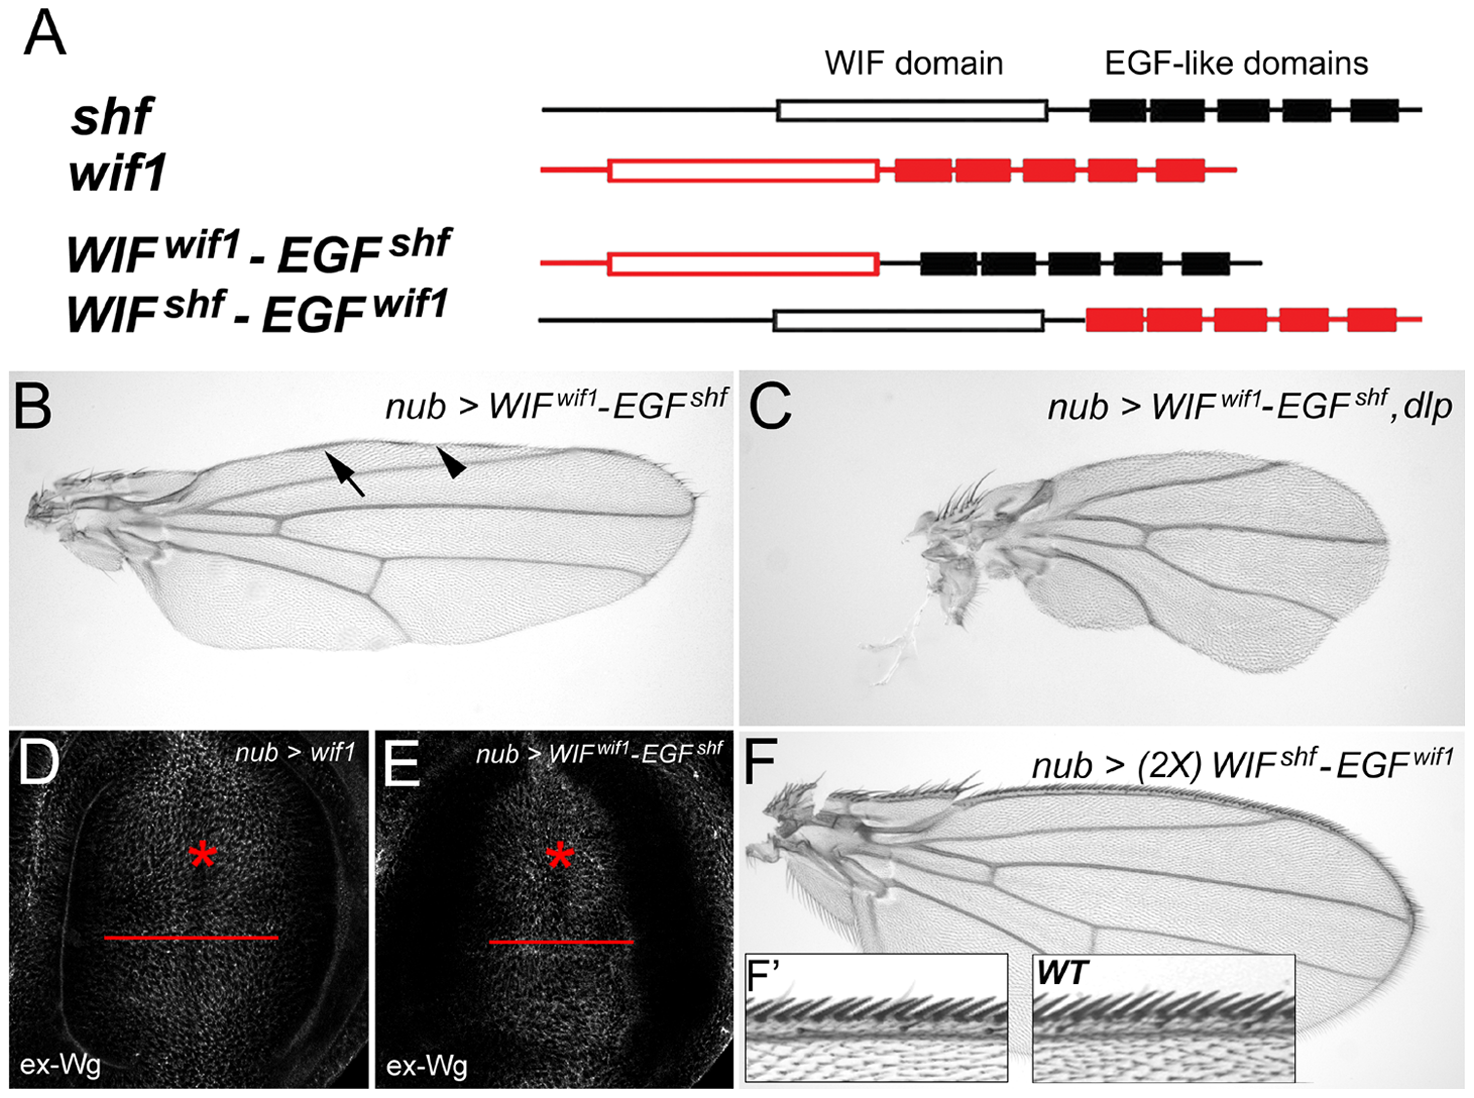 The EGF-like domains are interchangeable between Wif1 and Shf during Wif1-dependent Wg inhibition.